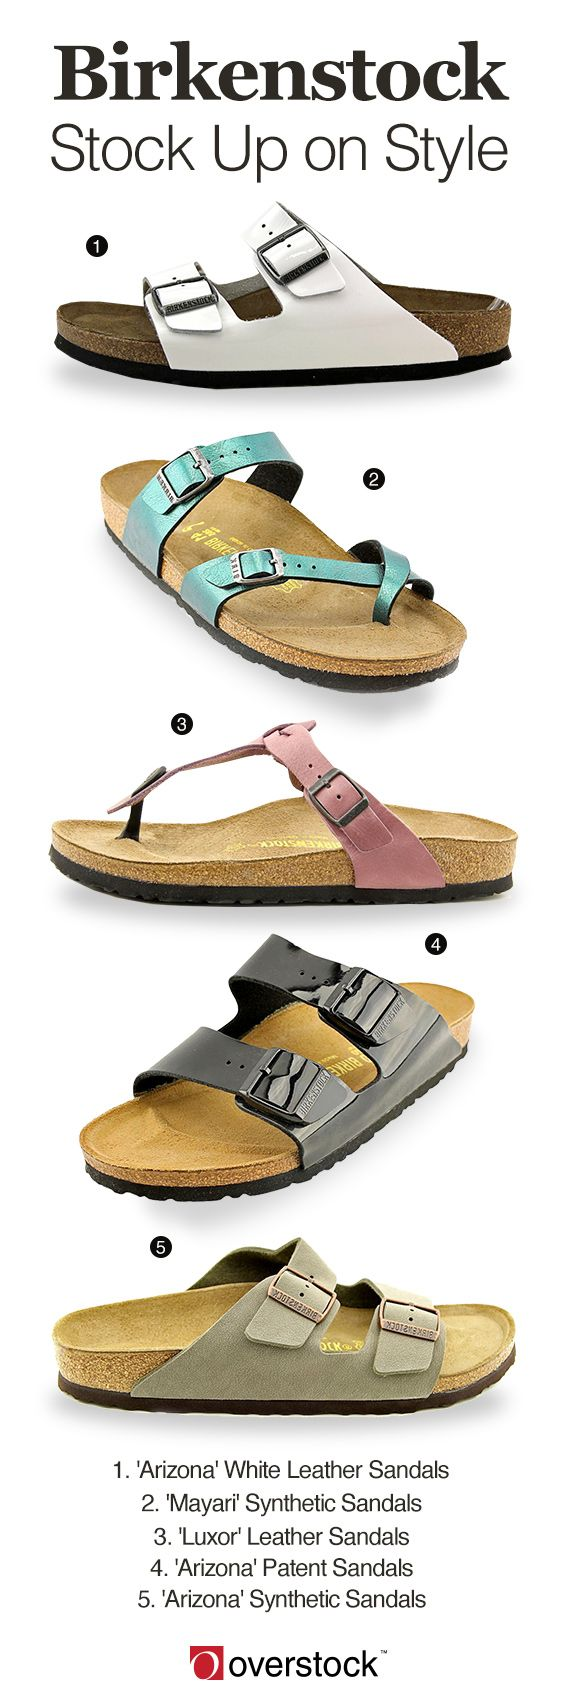 """Enjoy the sheer comfort of these relaxing sandals from Birkenstock. With deeply cushioned footbeds that are designed to fit the shape of your foot, these sandals provide extra support in a variety of colors in styles. Stay fresh with revised takes on the iconic two-strap """"Arizona"""" in white and patent leather or express your personal style in the colorful """"Mayari."""" Get free shipping and earn up to 5% rewards back when you join Club O."""